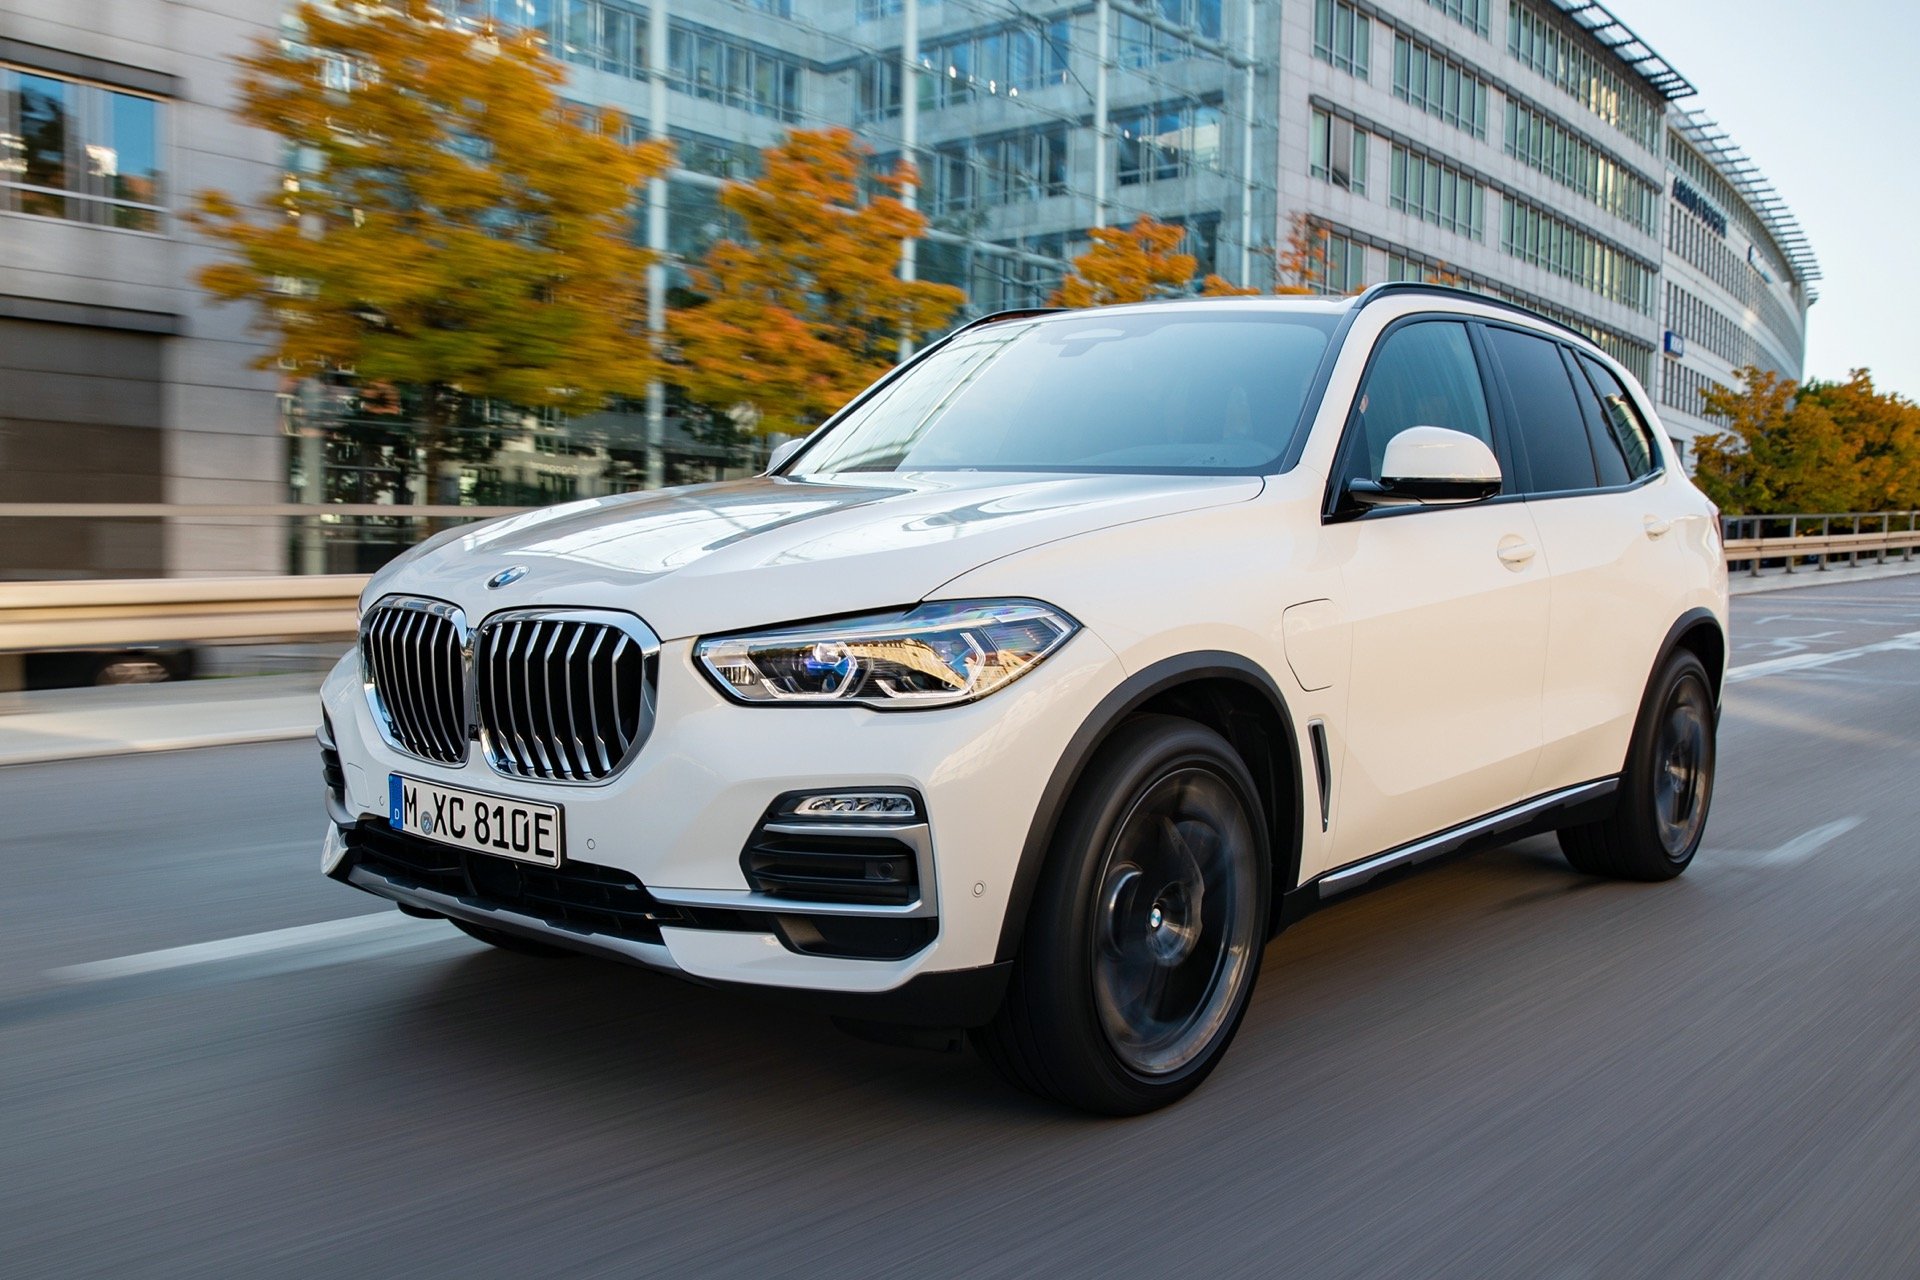 2021 Next Gen BMW X5 Suv New Review